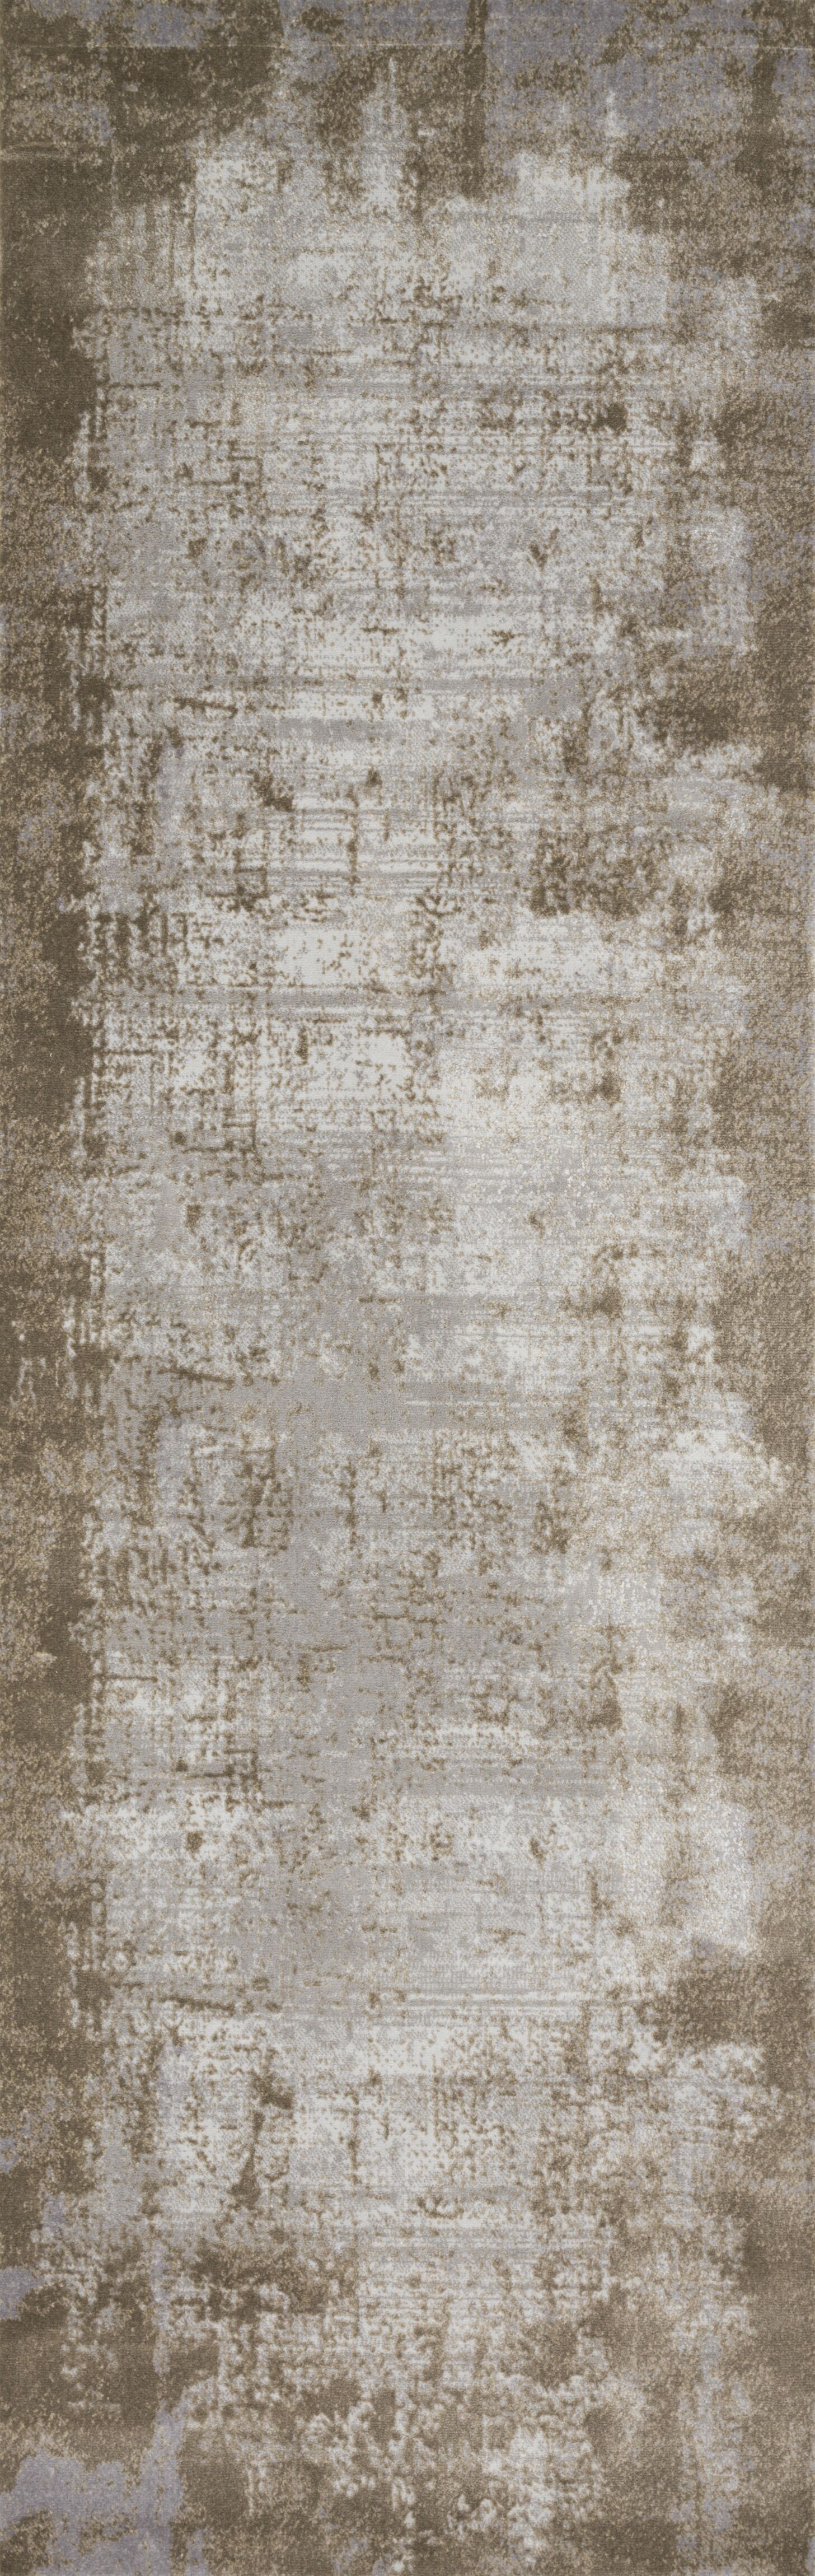 Bourque Wheat/Gray Area Rug Rug Size: Runner 2'7